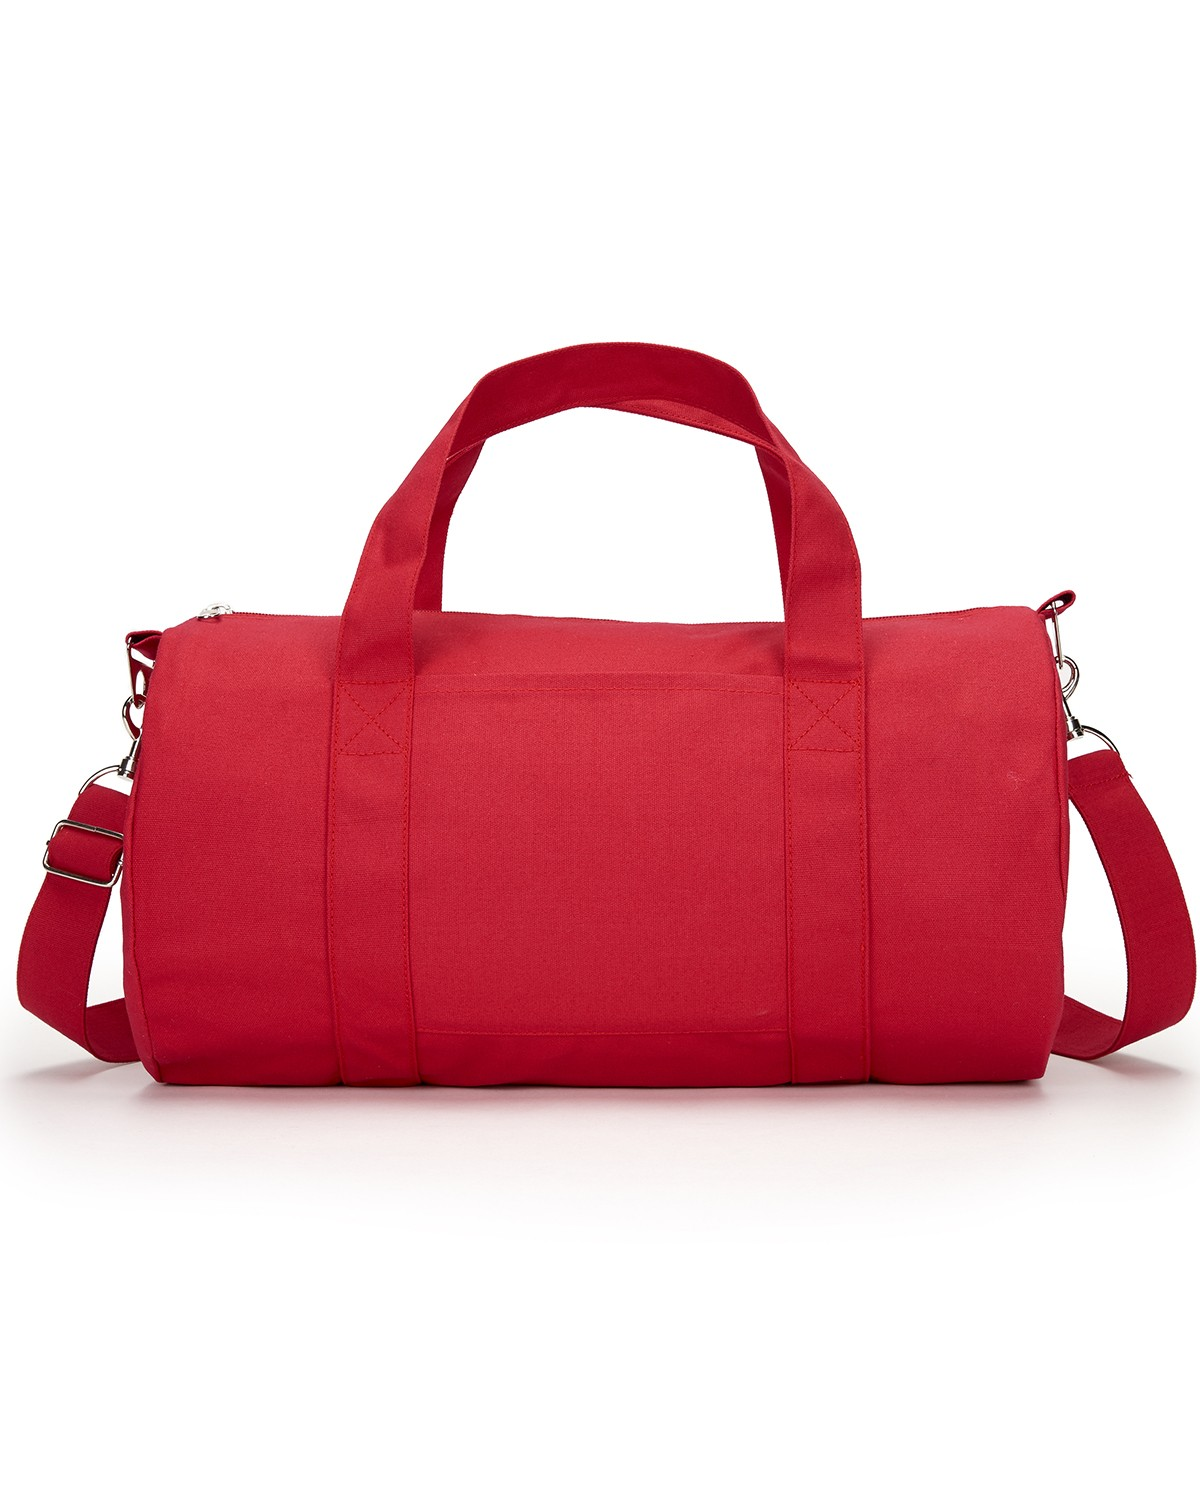 3301 Liberty Bags RED